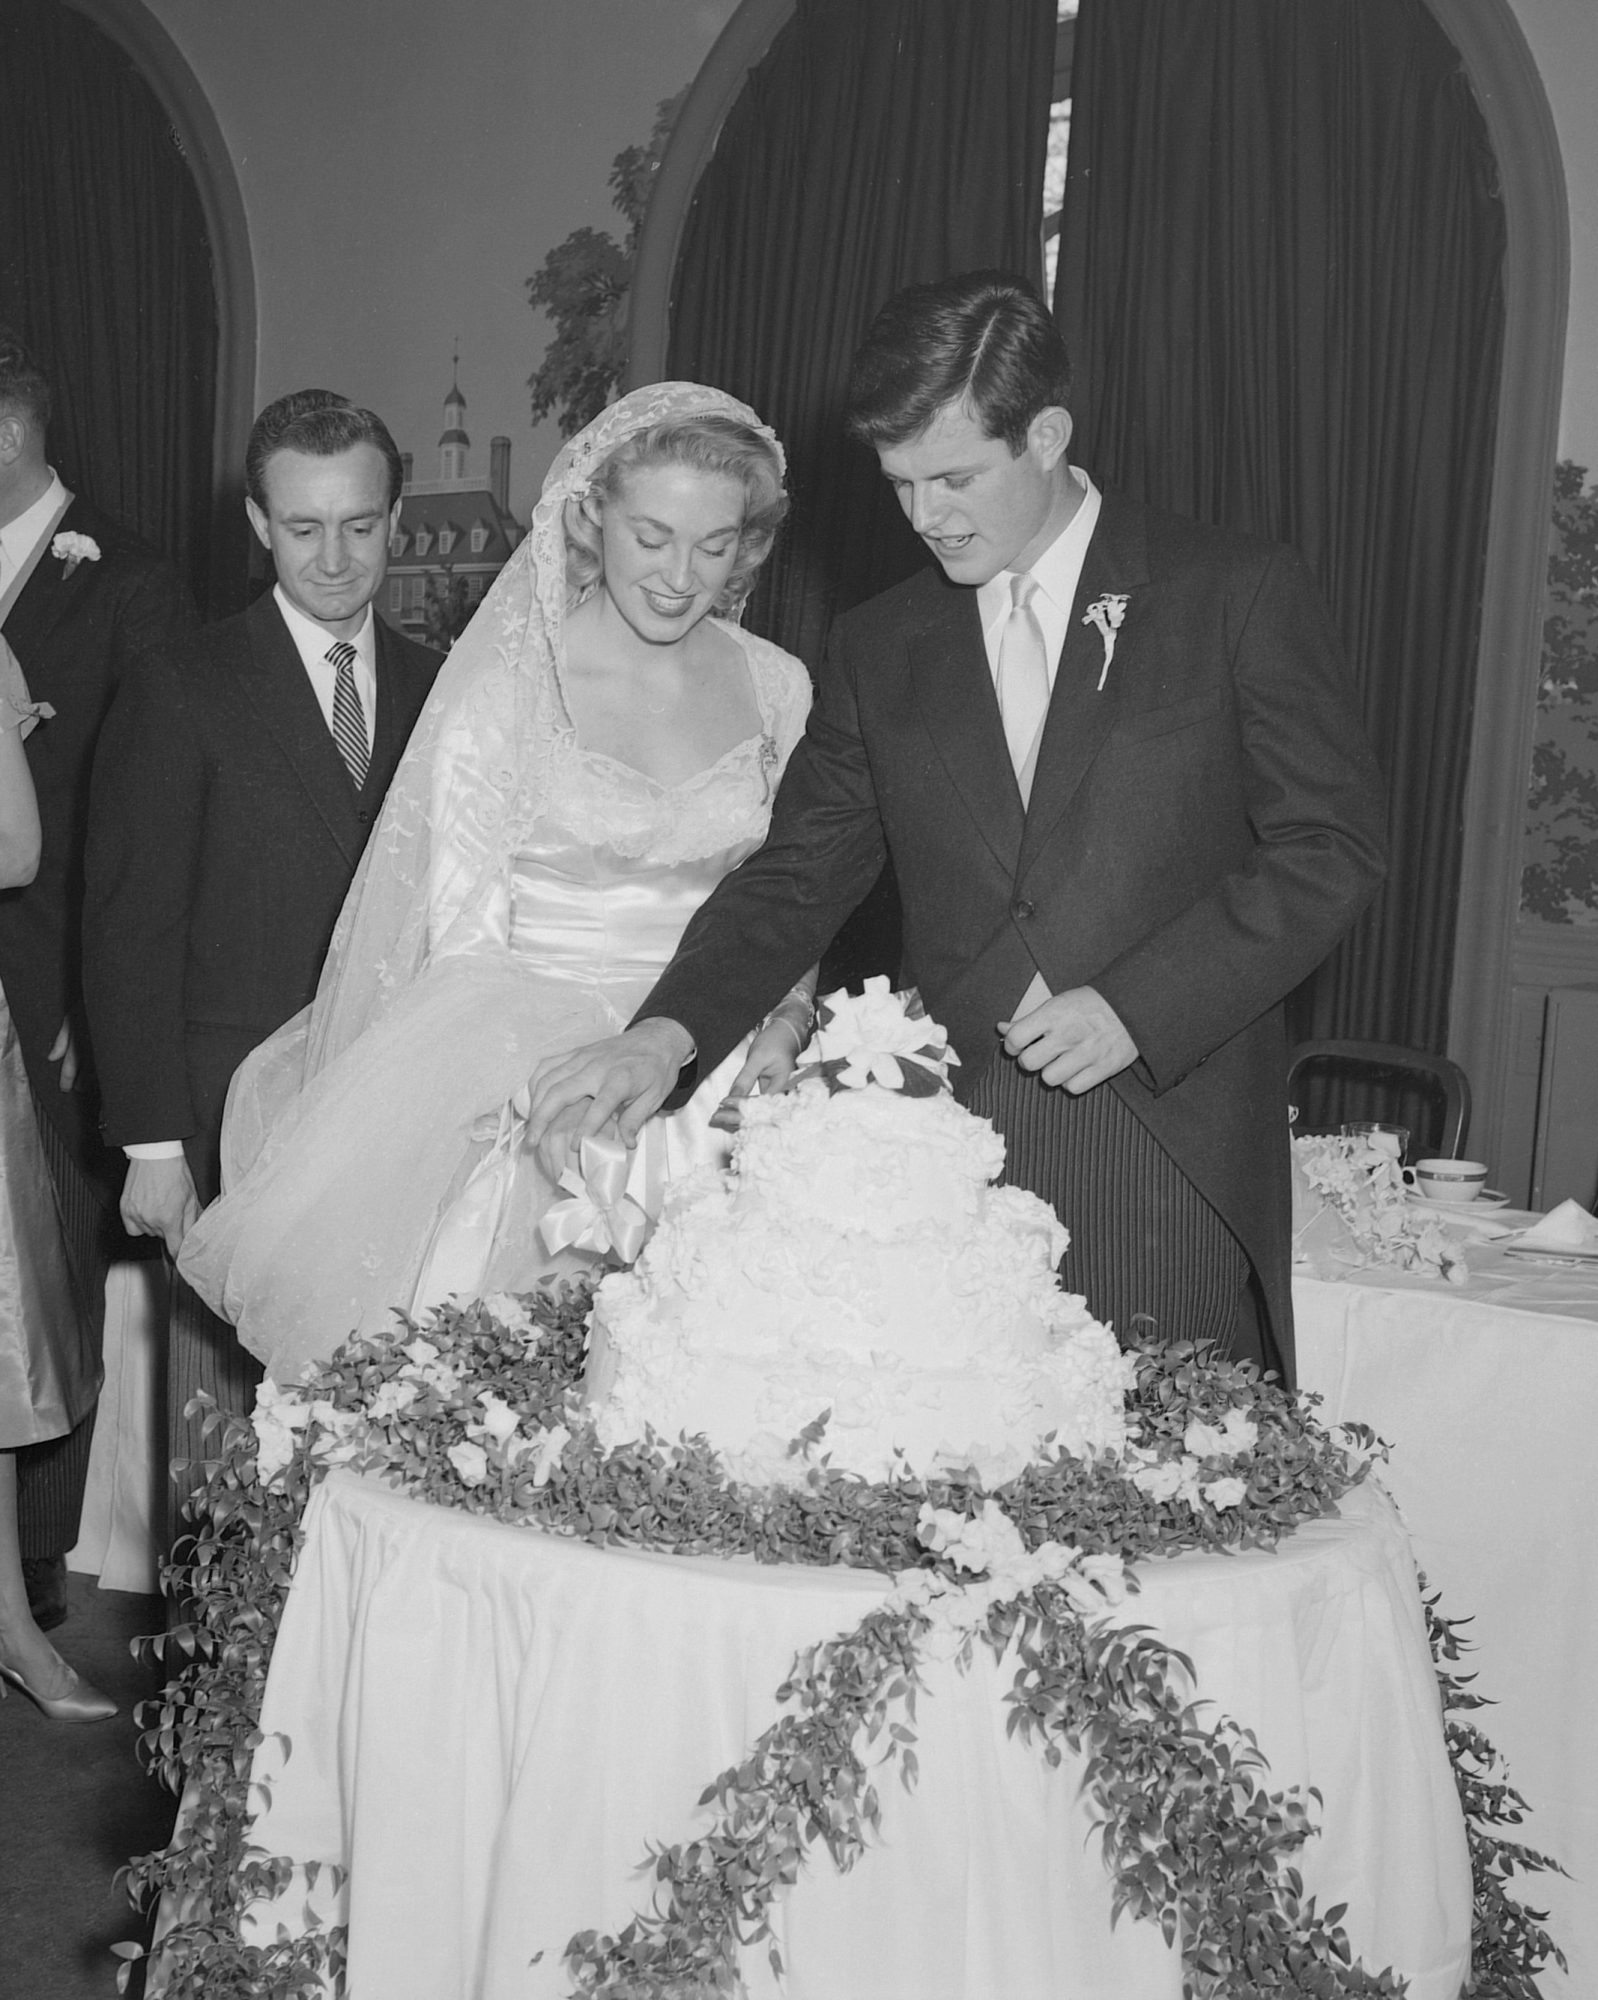 celebrity-vintage-wedding-cakes-ted-kennedy-83931385-1015.jpg